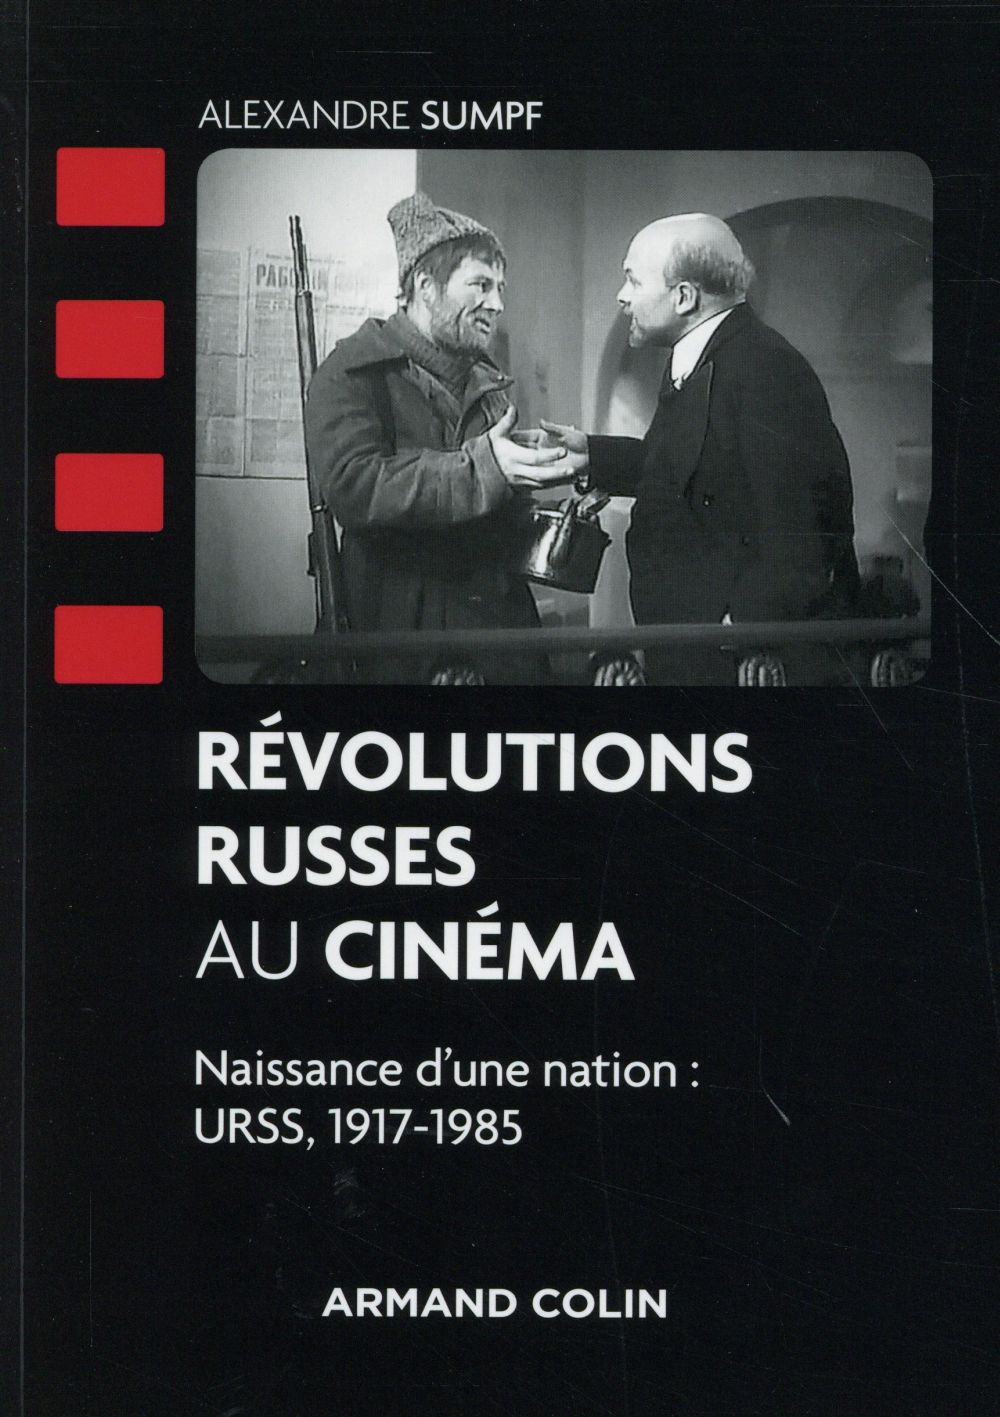 REVOLUTIONS RUSSES AU CINEMA